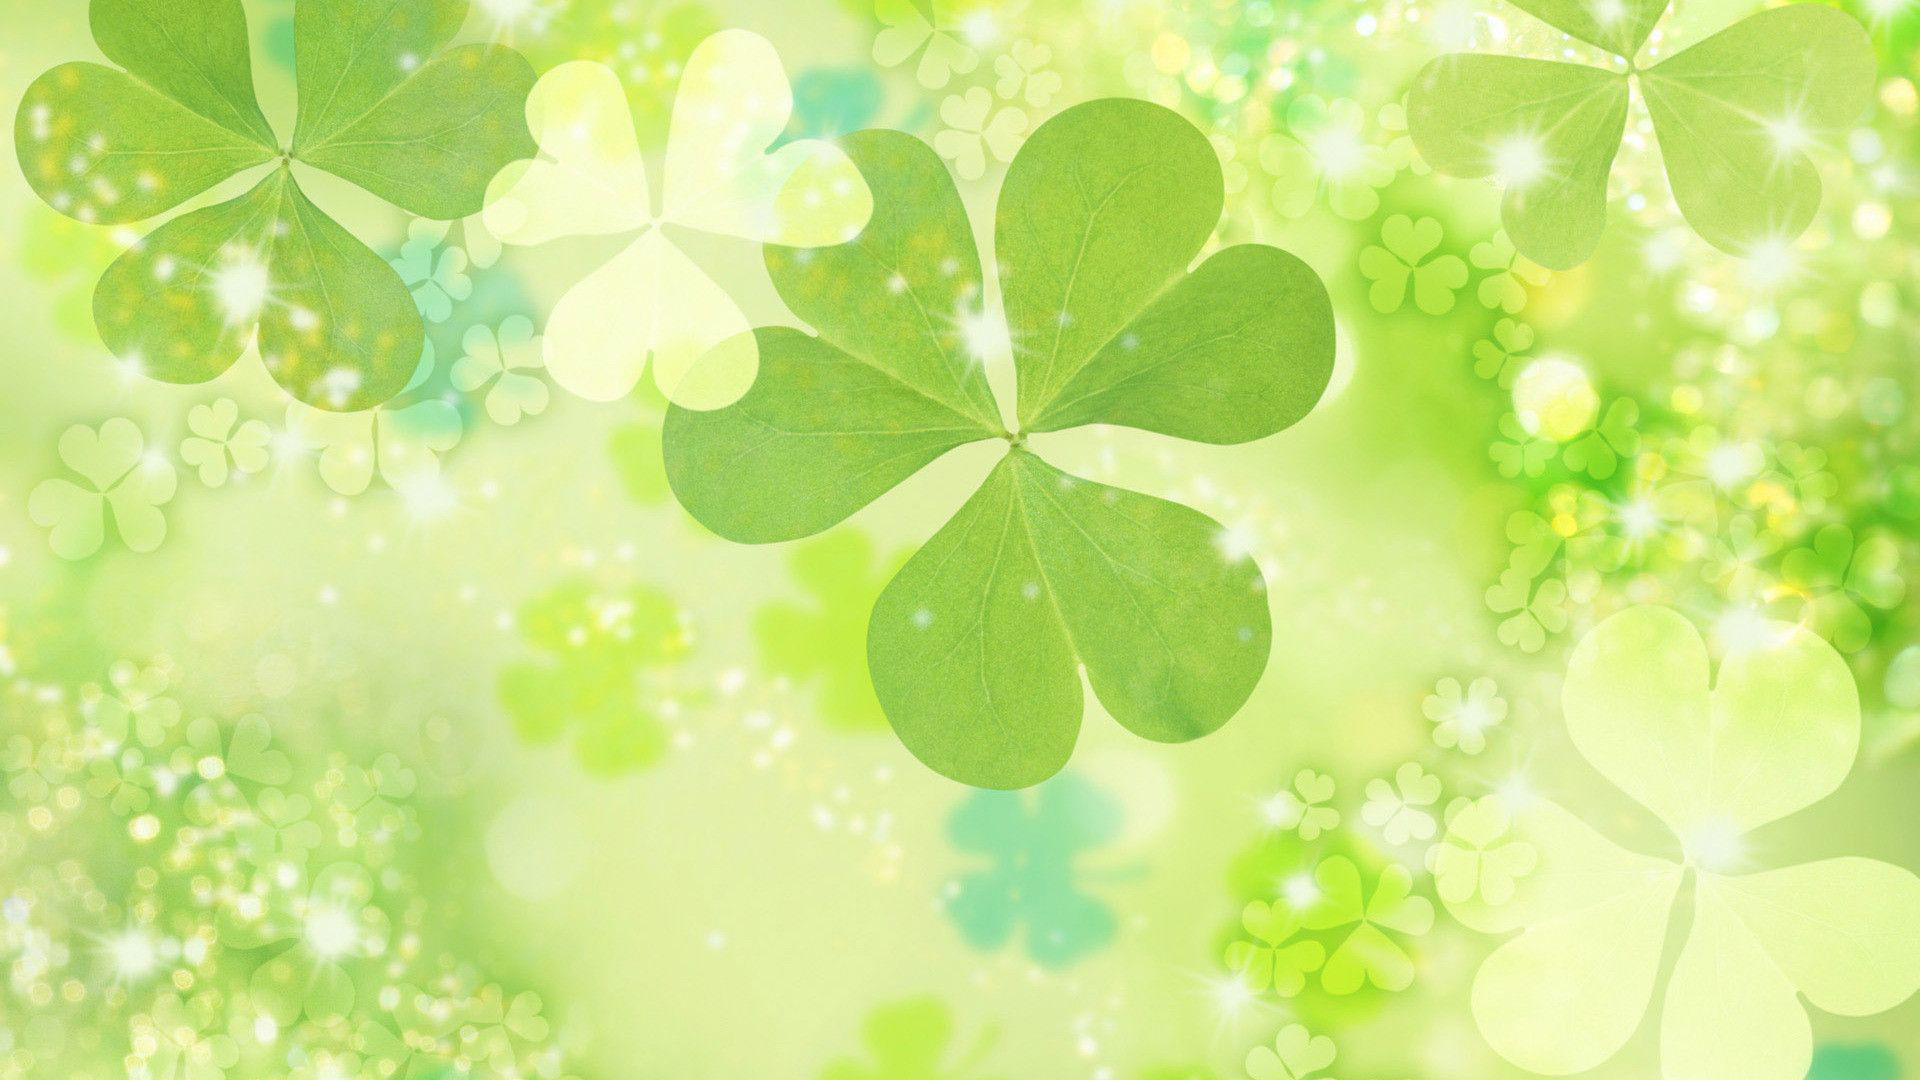 Download Four Leaf Clover Wallpapers HD 1920x1080